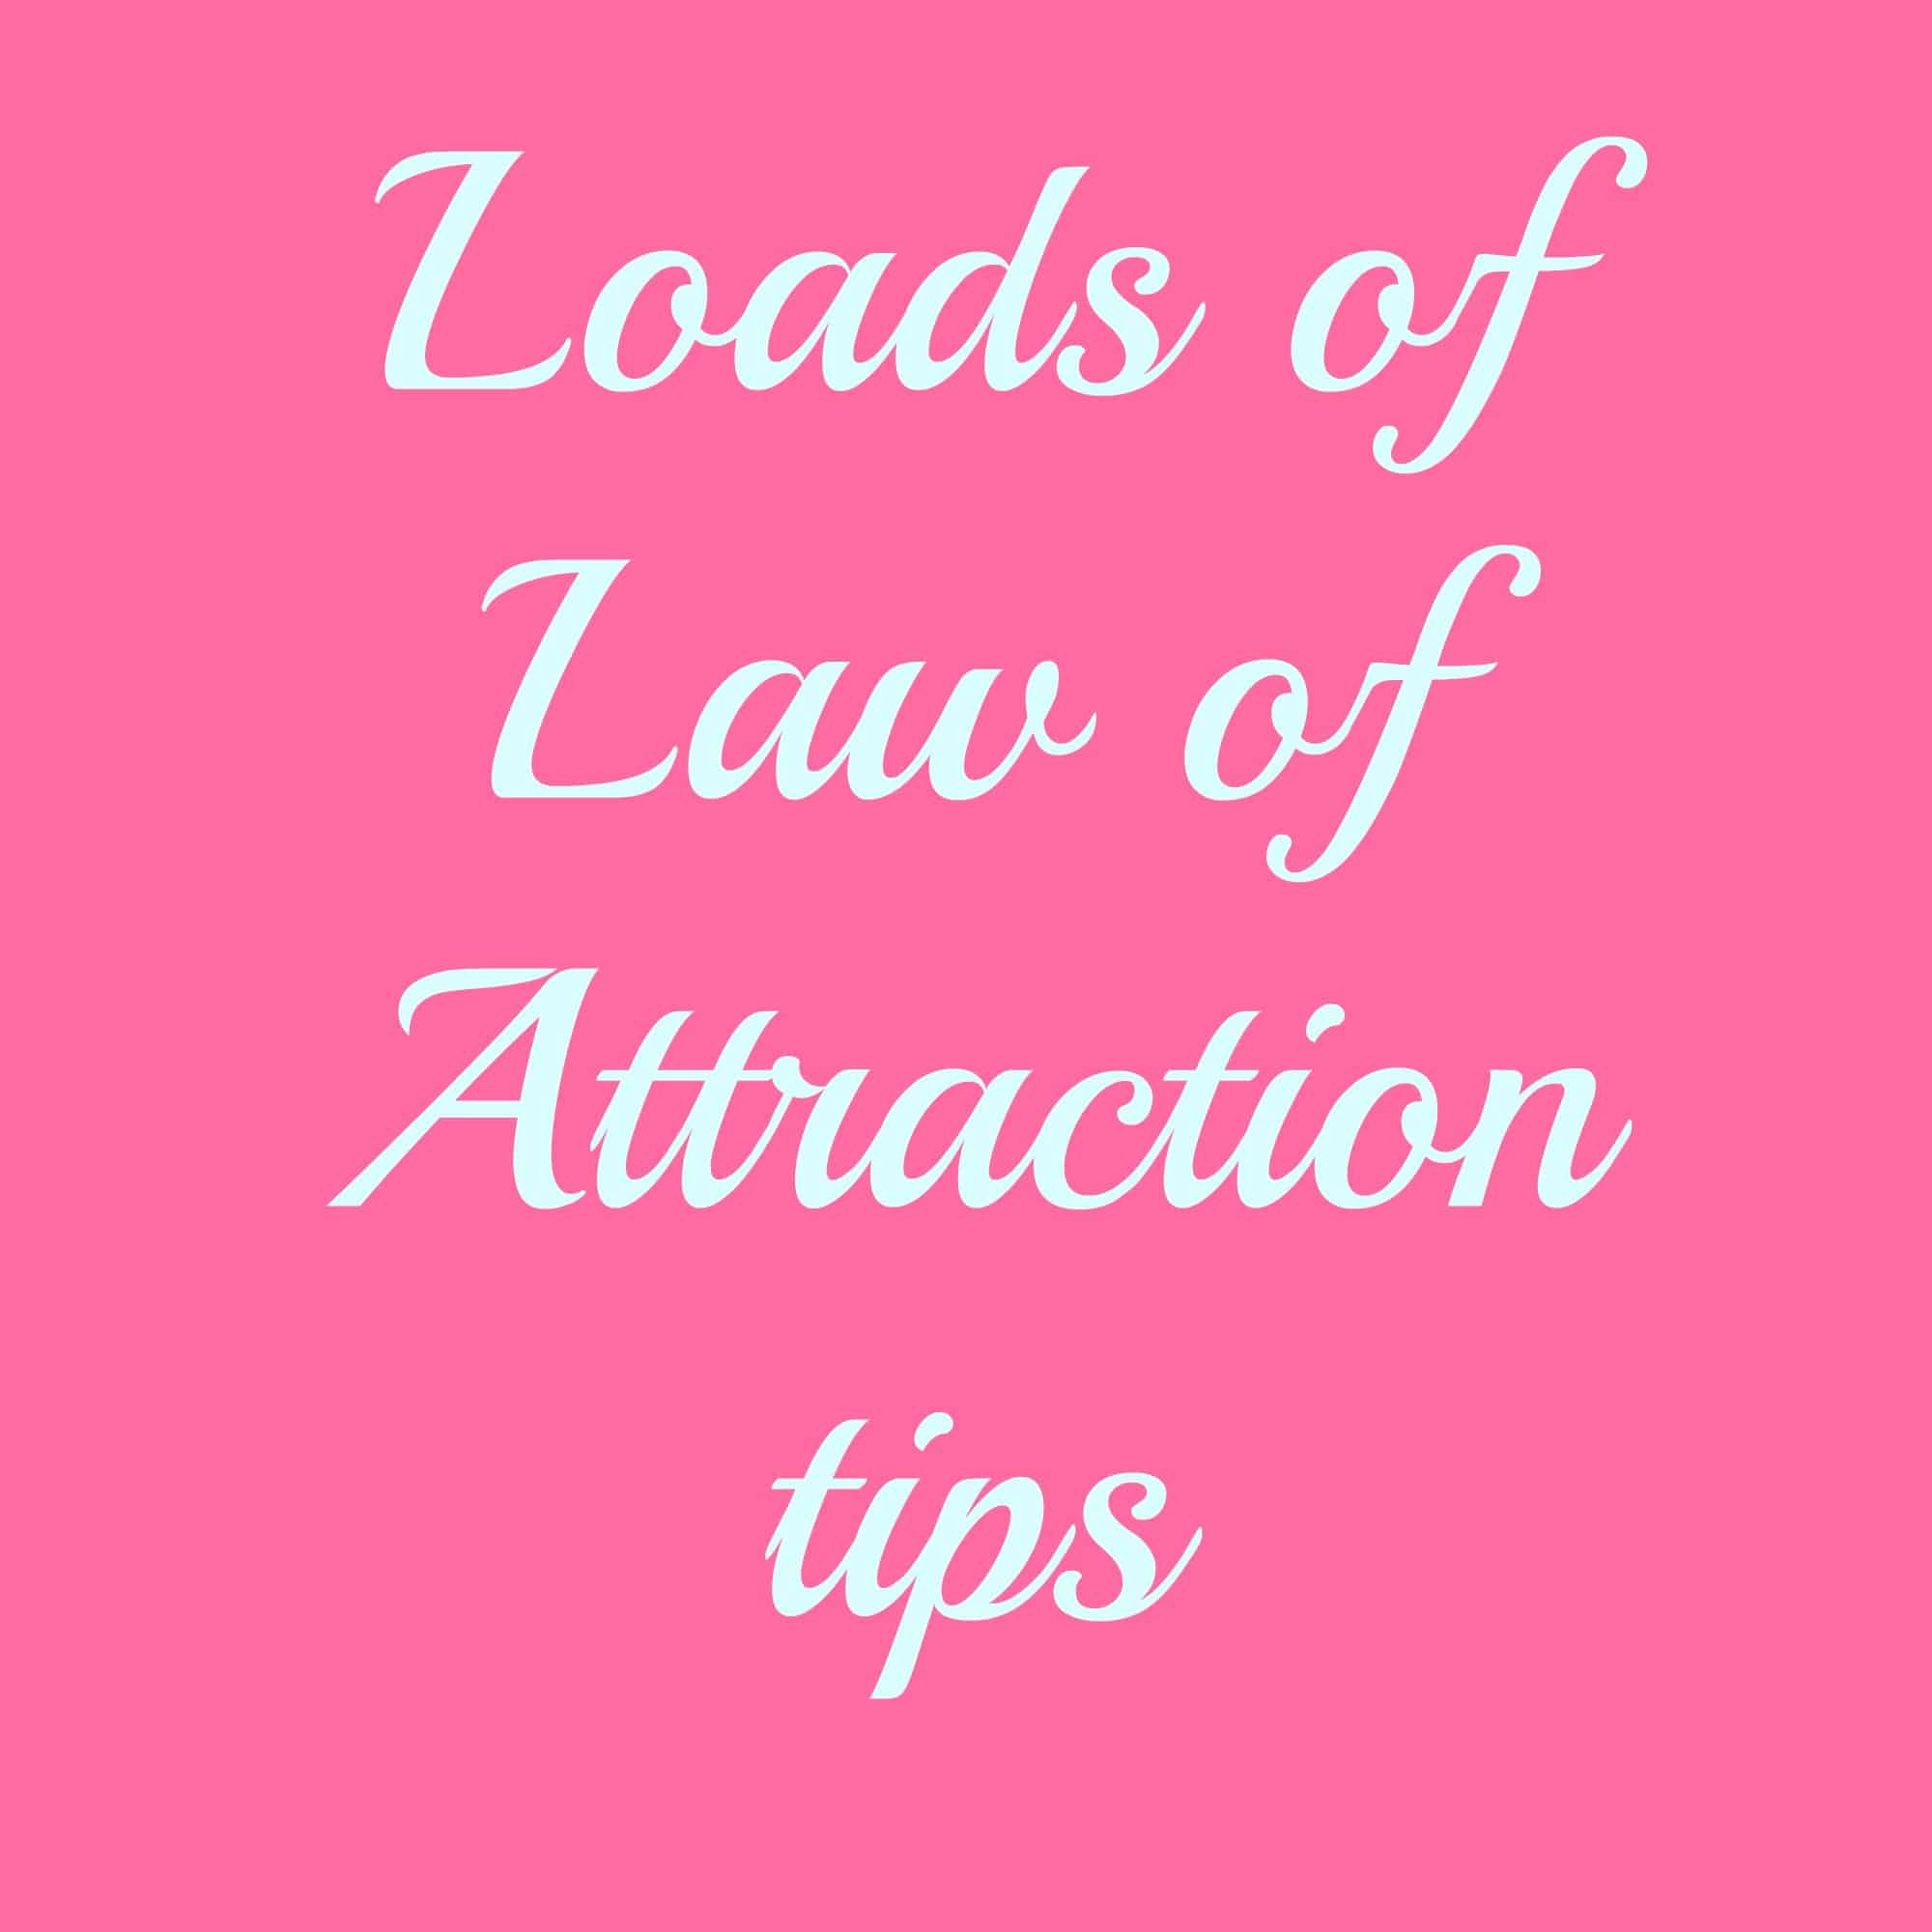 Loads of Law of attraction tips to help you start attracting the things you want.